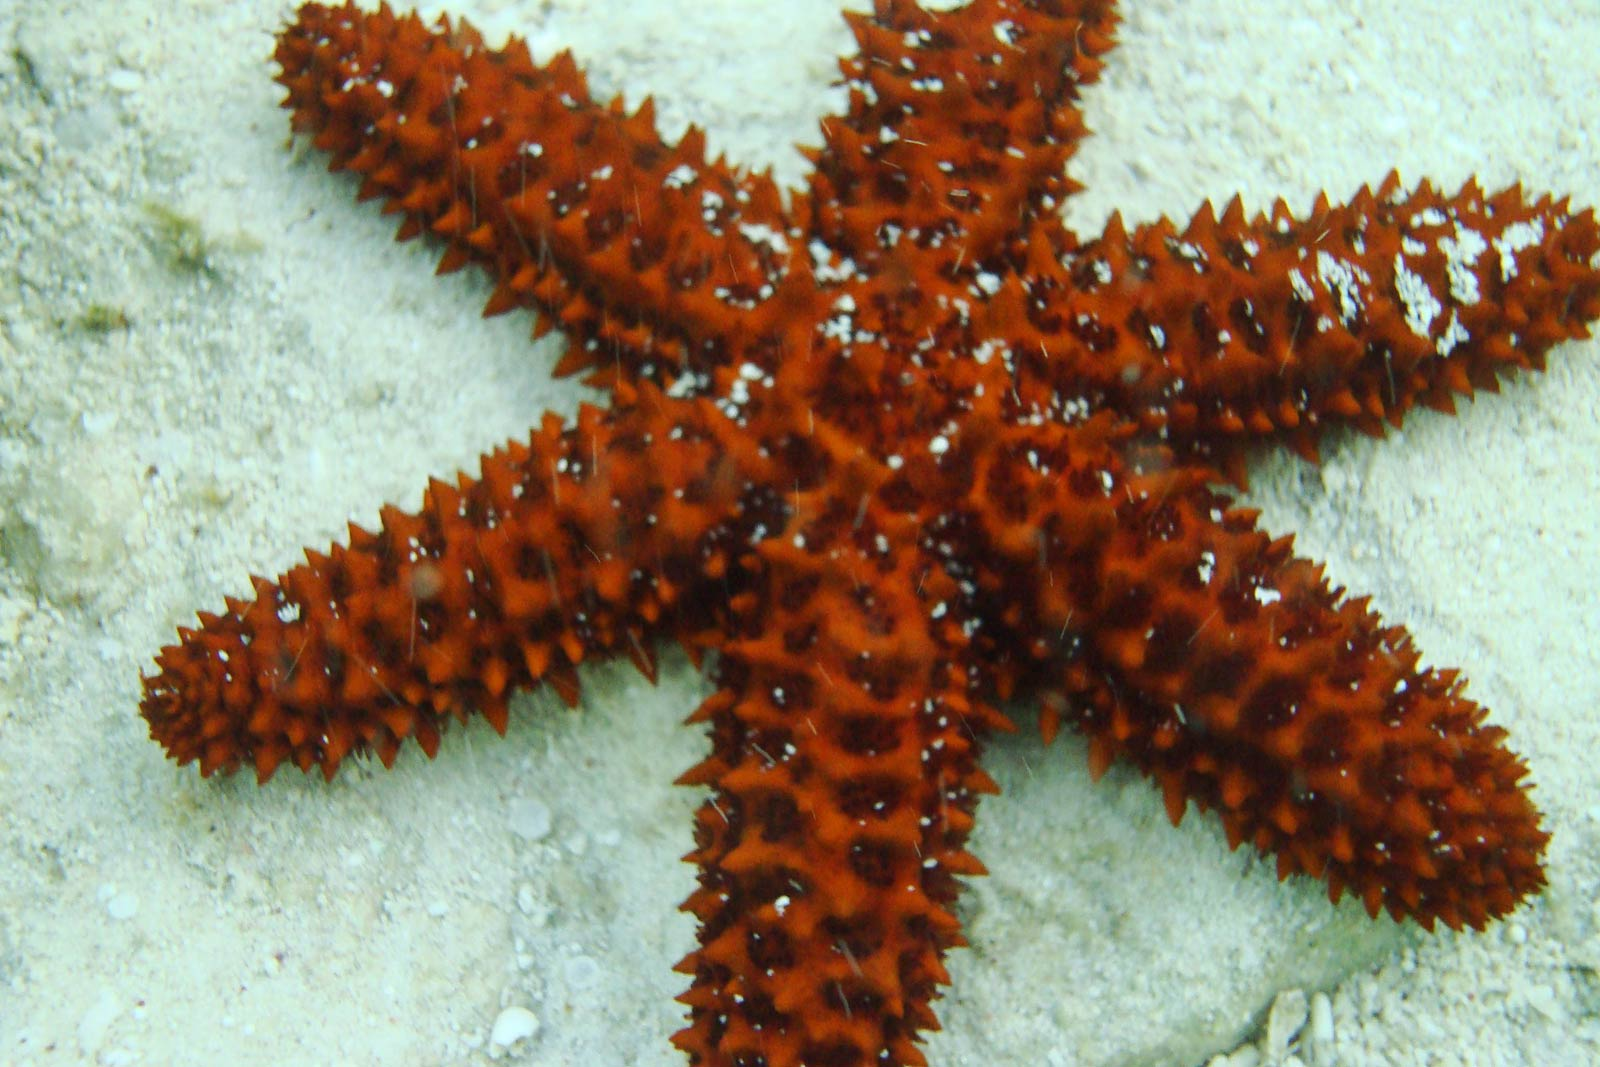 a description of the starfish in marine species Starfish are not fish, but rather marine invertebrates or echinoderms in the class asteroidea therefore, scientists prefer to call them sea stars there are approximately 1,800 different species of asteroidea they are known for their ability to regenerate amputated limbs, and are characterized.